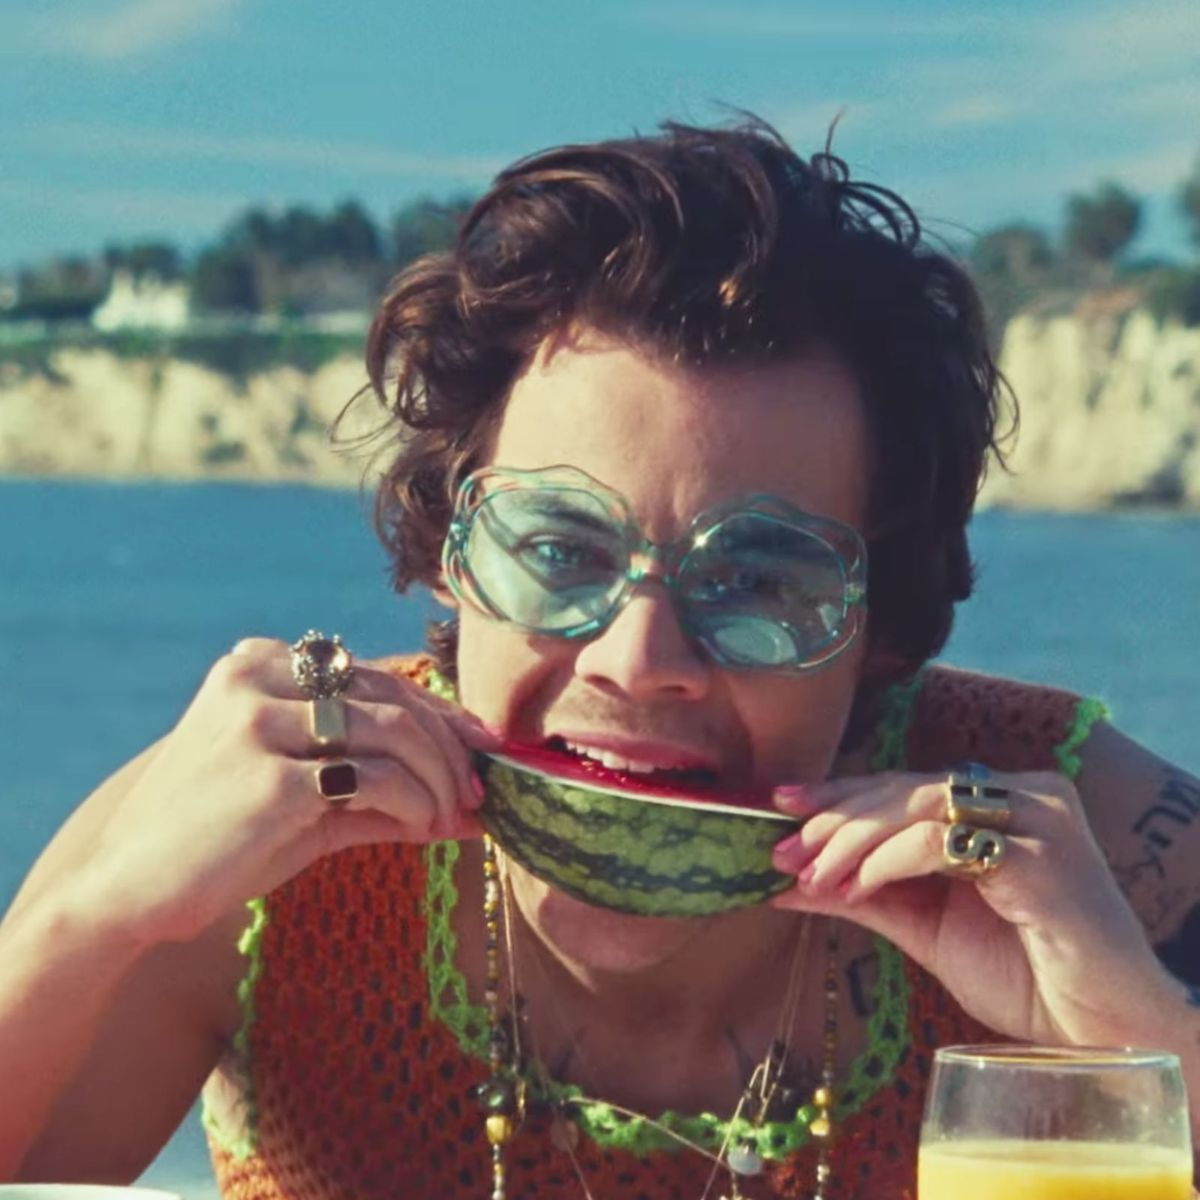 Be back - just off to the shops to get a couple of 🍉🍉 @Harry_Styles we are obsessed with the new clip! #harrystyles #watermelonsugar https://t.co/cK8KhYnyvn